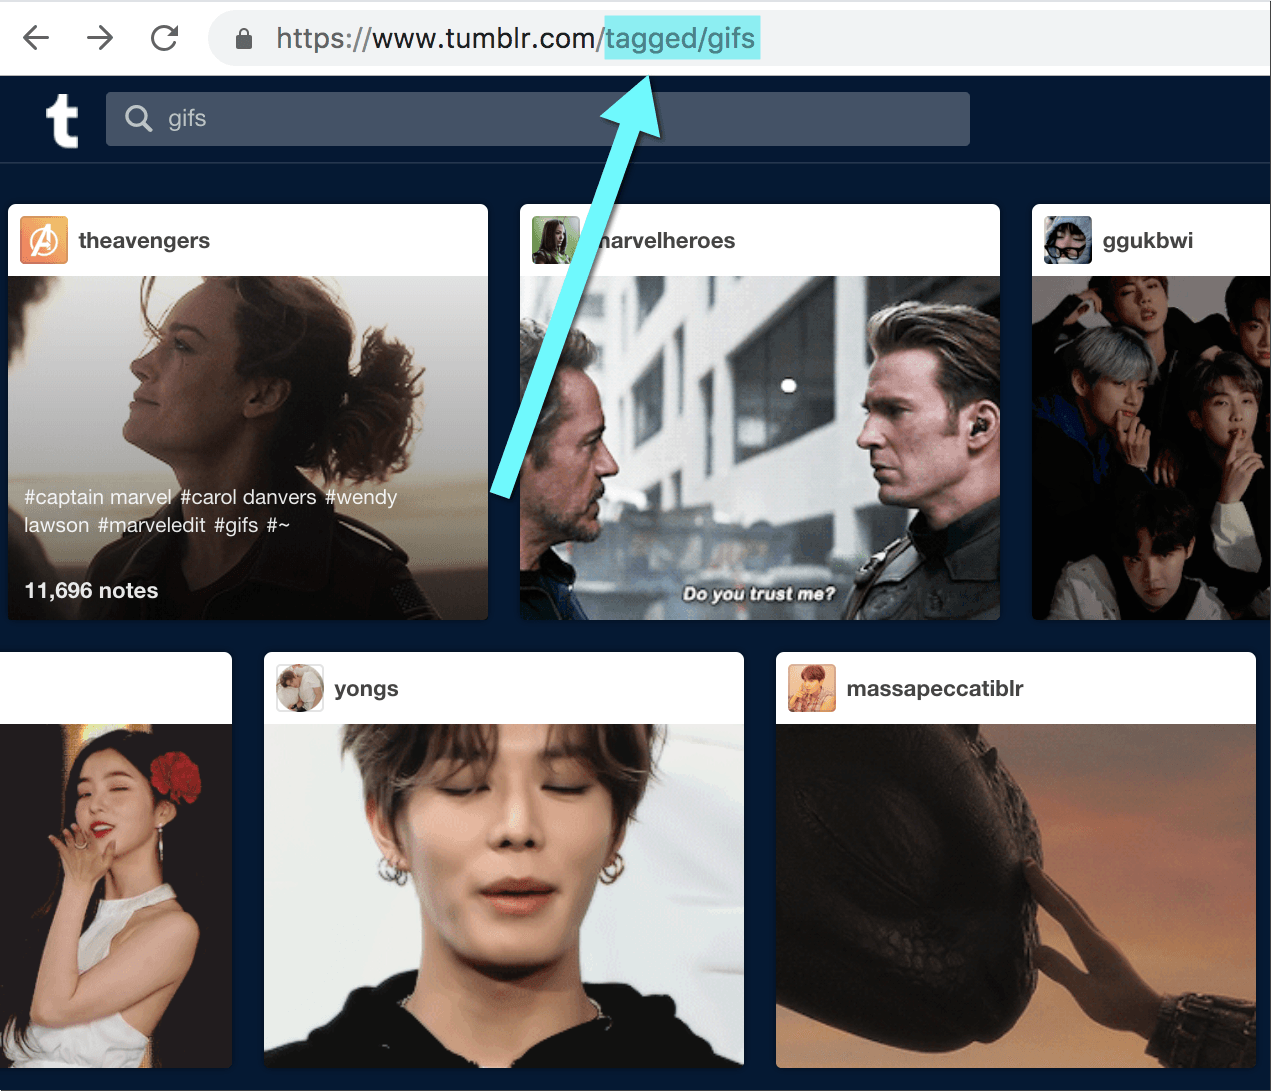 Tumblr Tag Search: How to Find Original Posts on Tumblr